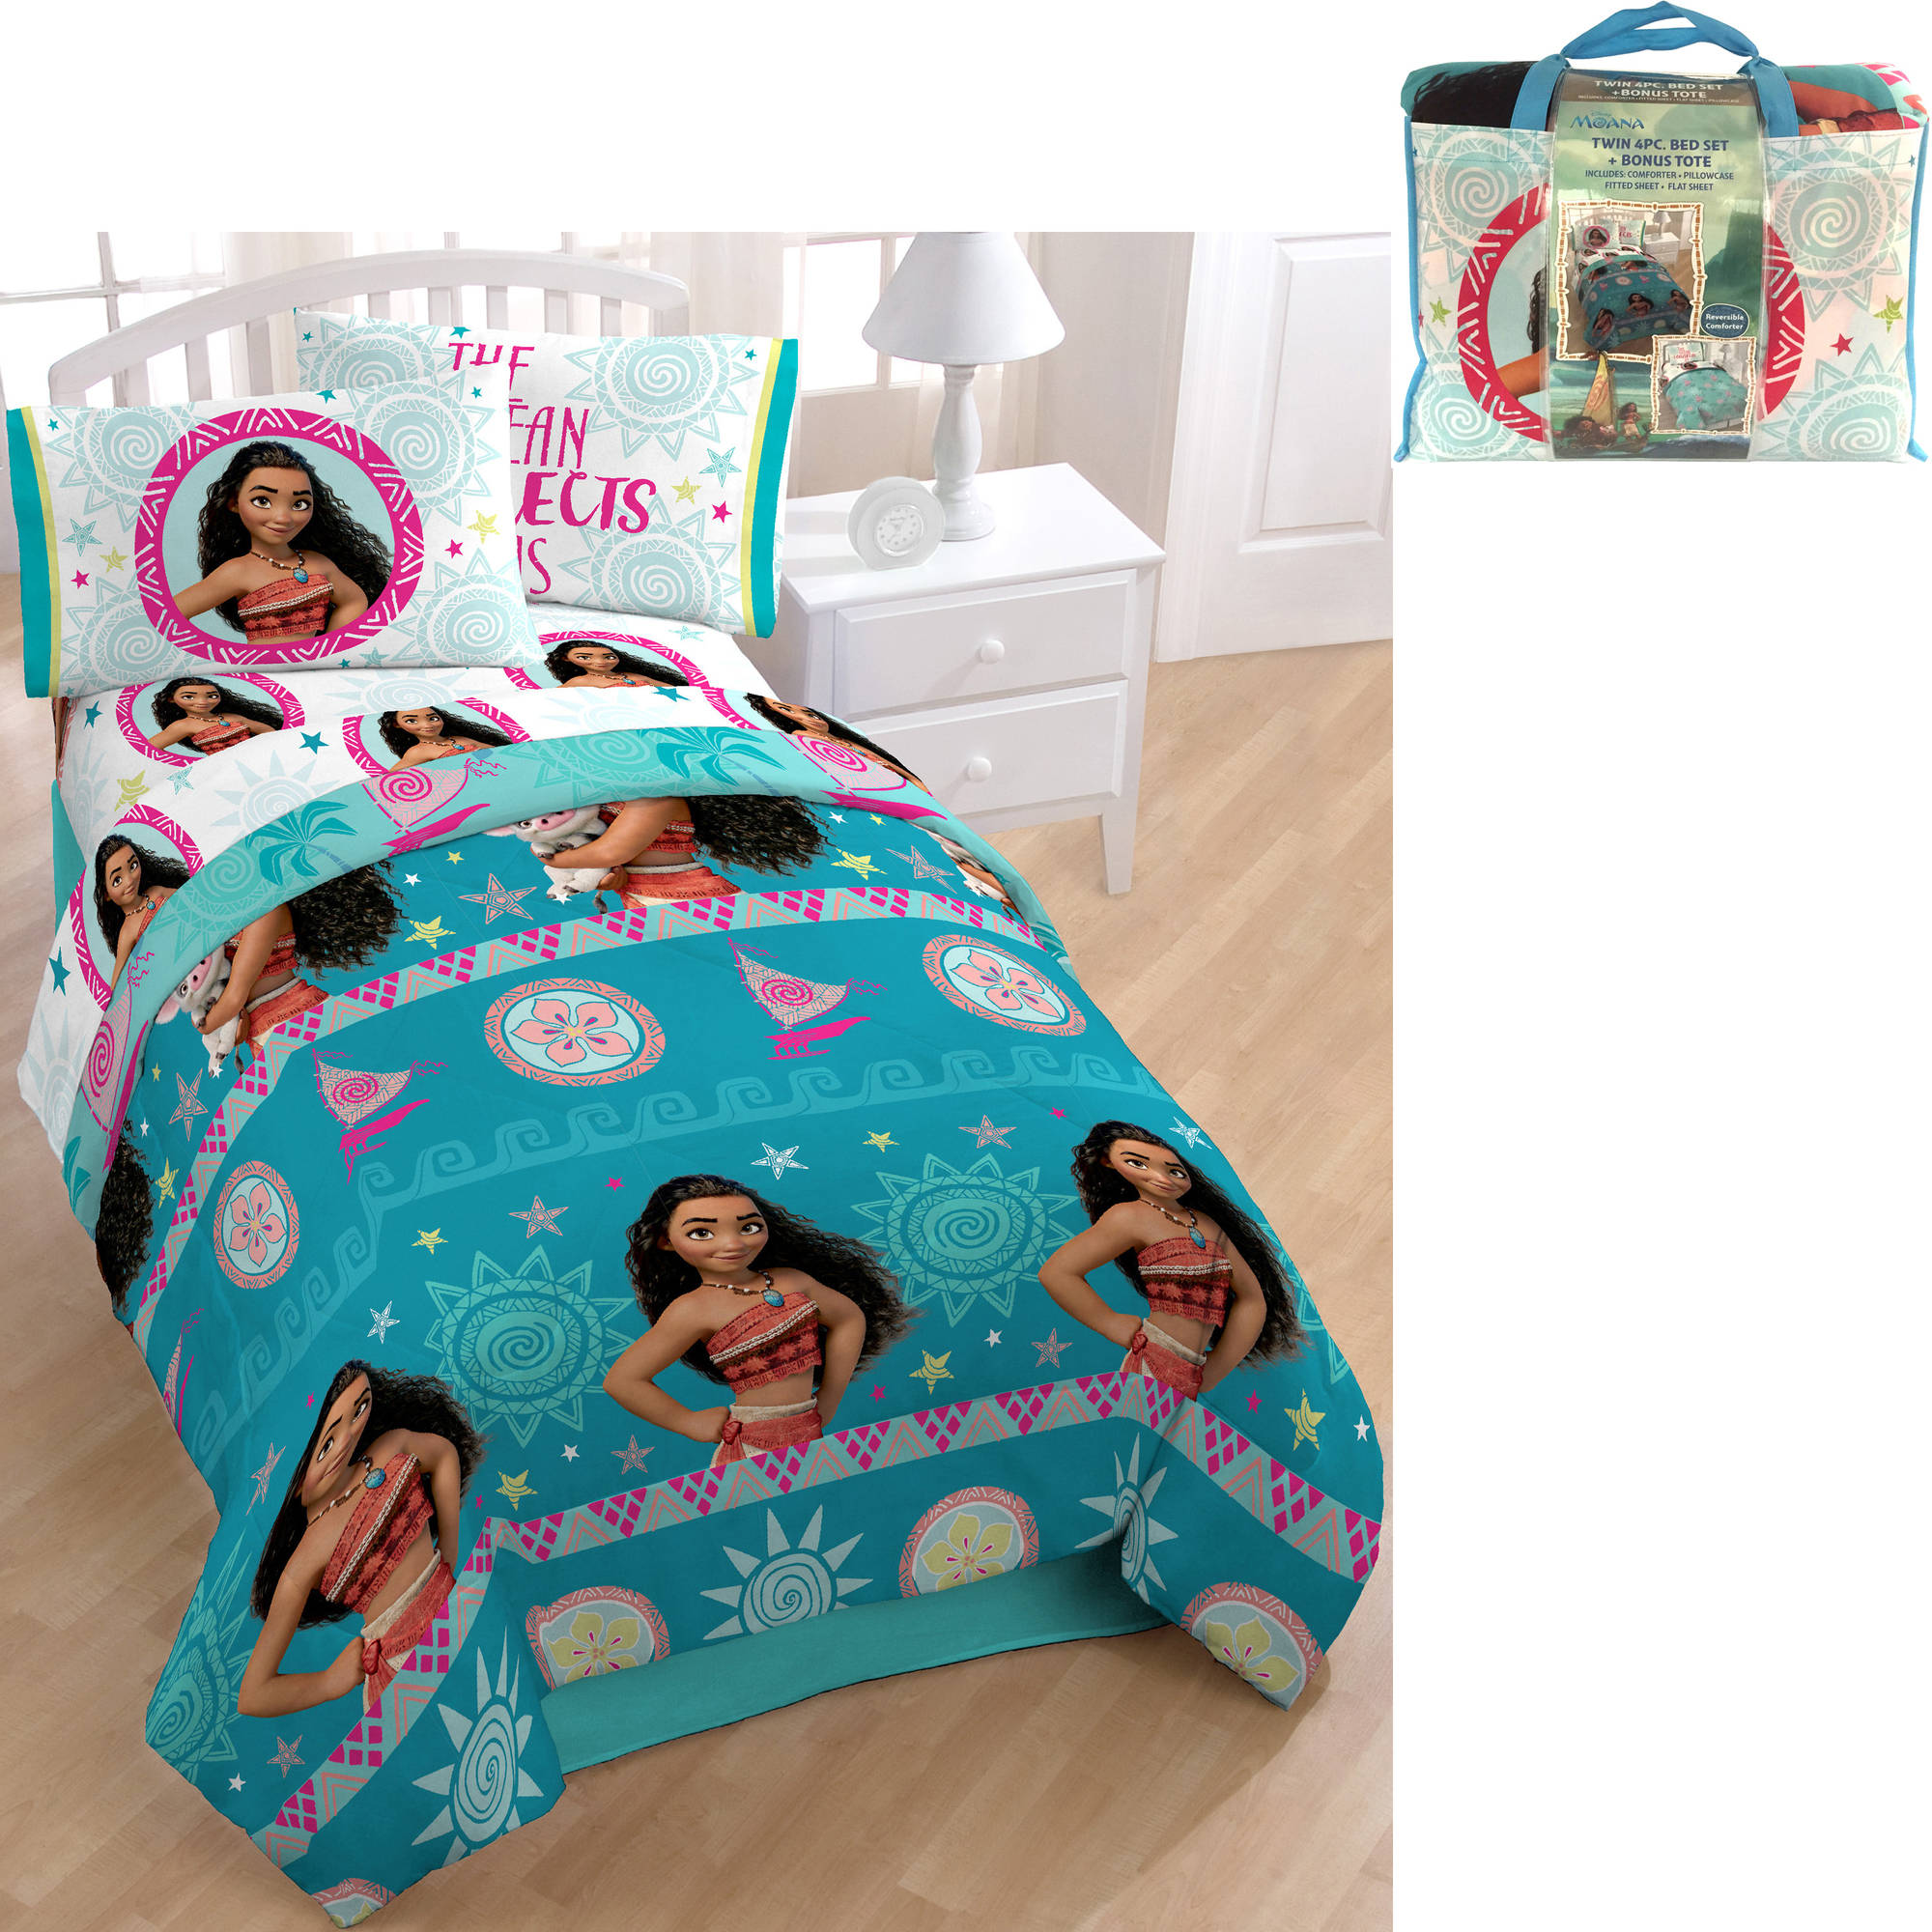 Disney Moana Bed in a Bag 5 Piece Bedding Set with BONUS Tote by Jay Franco